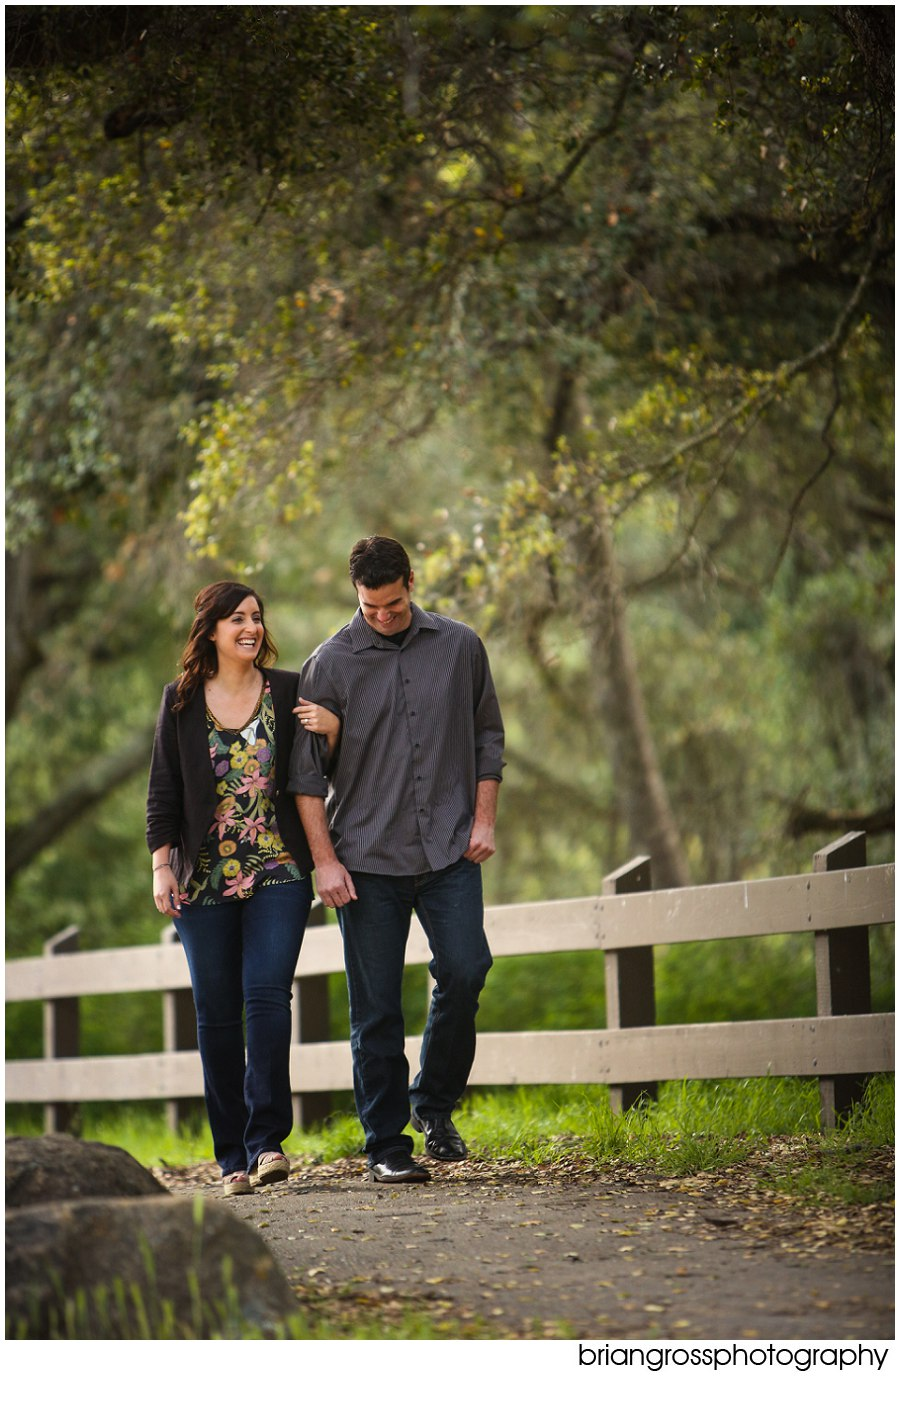 Rachael&Andy_Engagement_BrianGrossPhotography-142_WEB